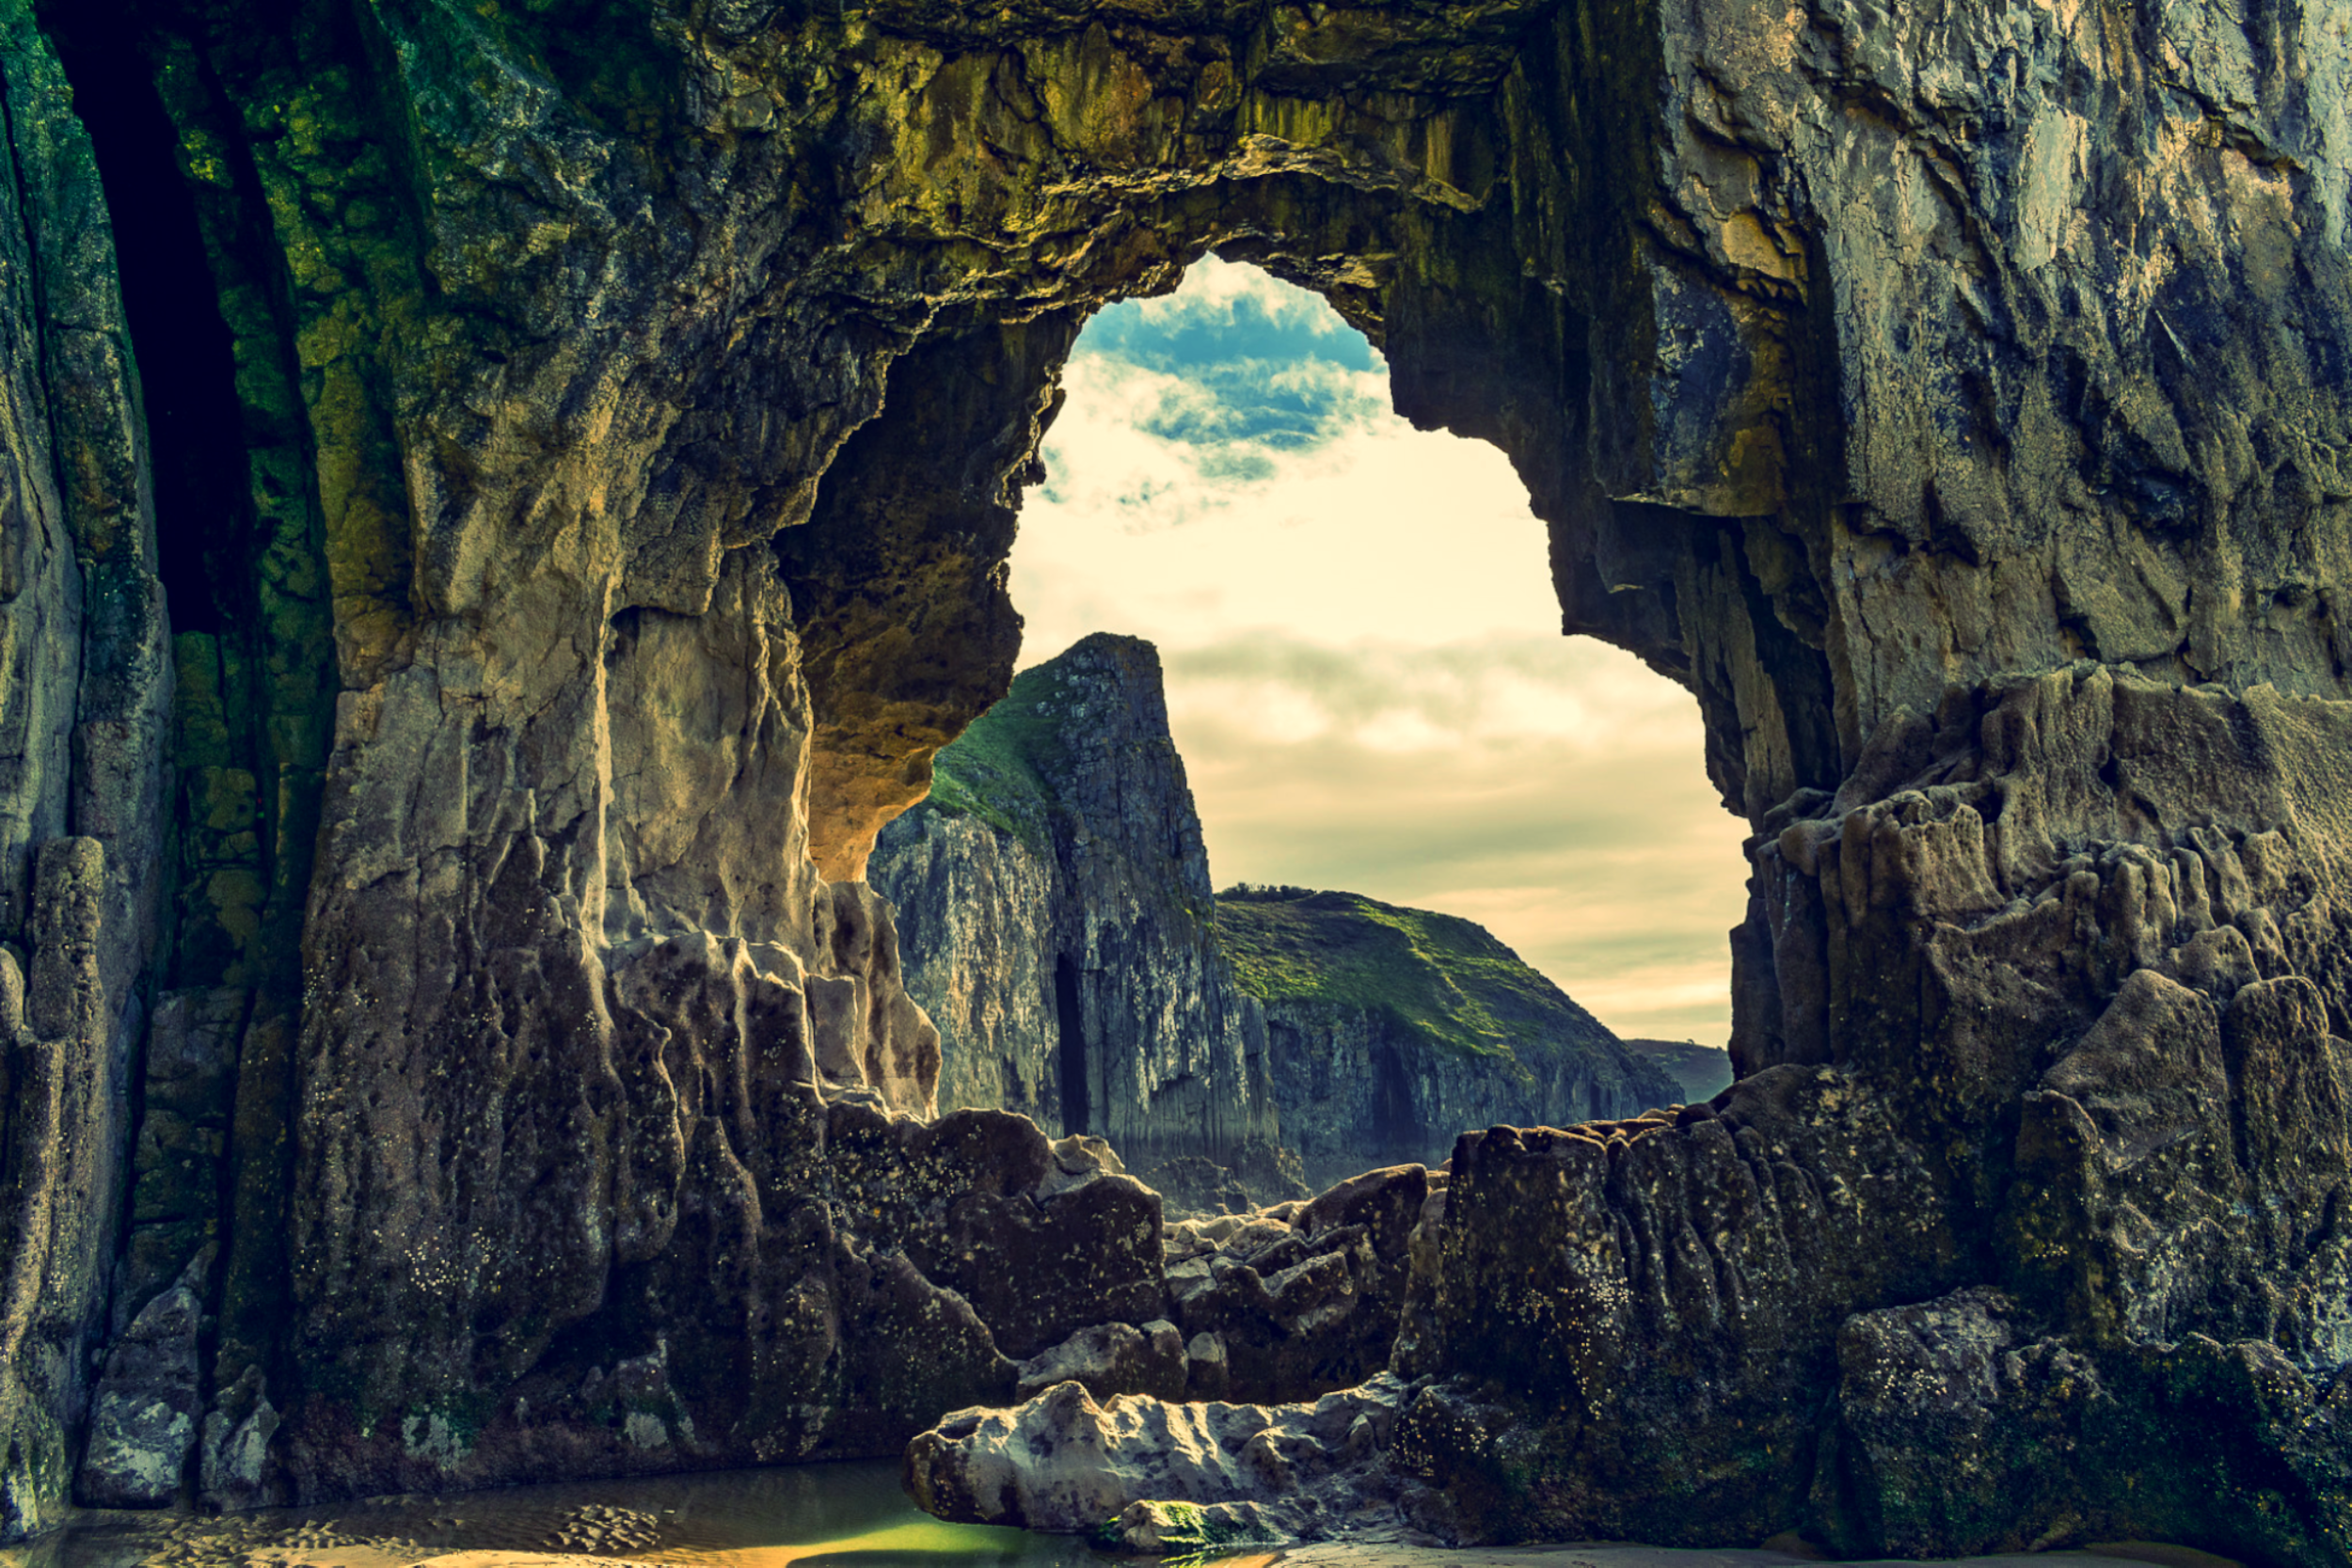 One of the most beautiful hidden beauty spots in Pembrokeshire. Lydstep Caverns, Wales